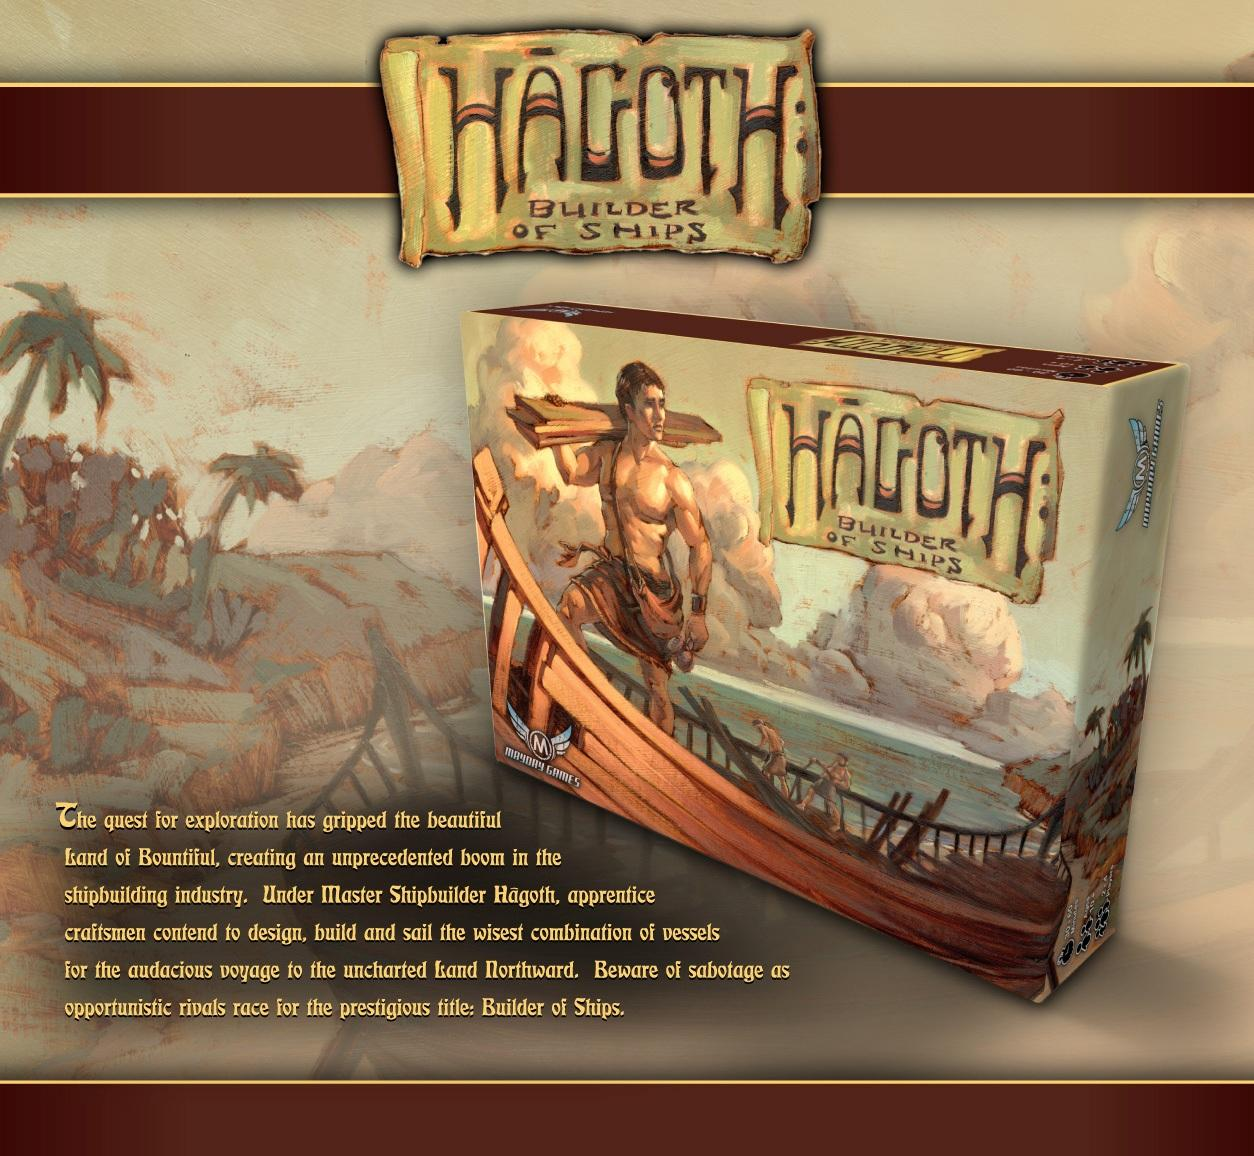 Hagoth: Builder of Ships by Mayday Games